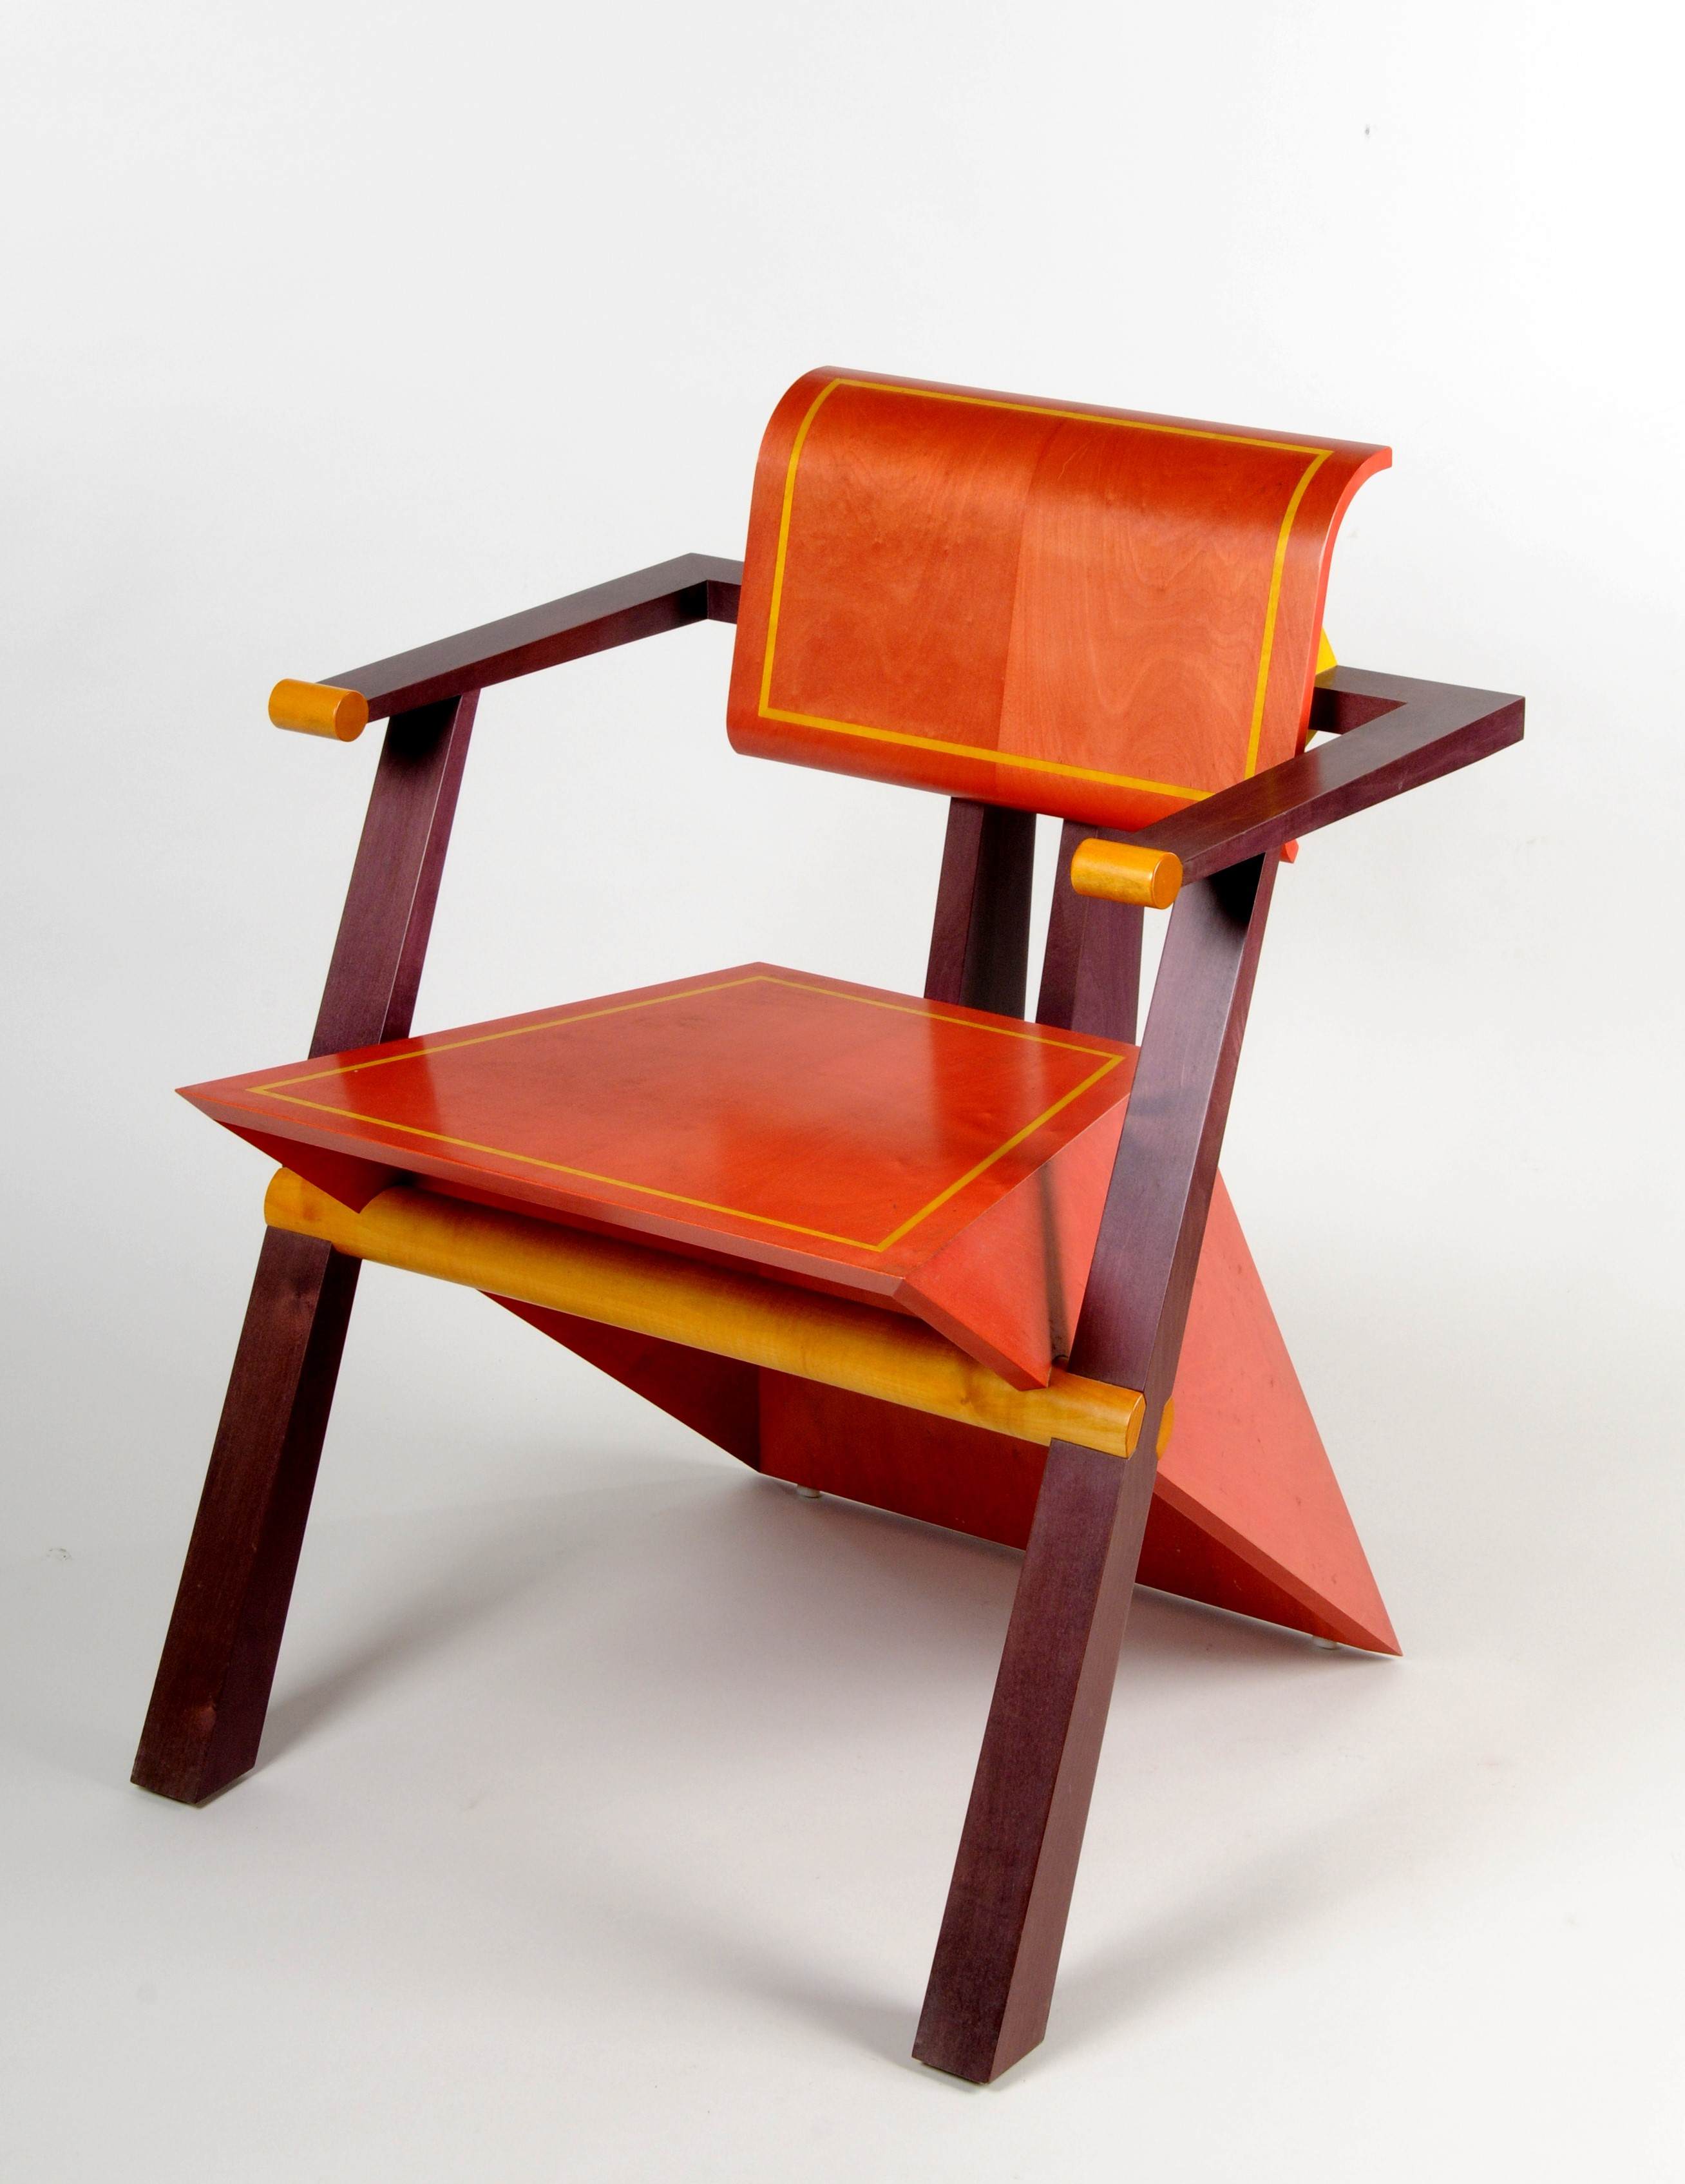 Wooden chair with two front legs and a prism shaped piece of wood forming the seat and the back legs.